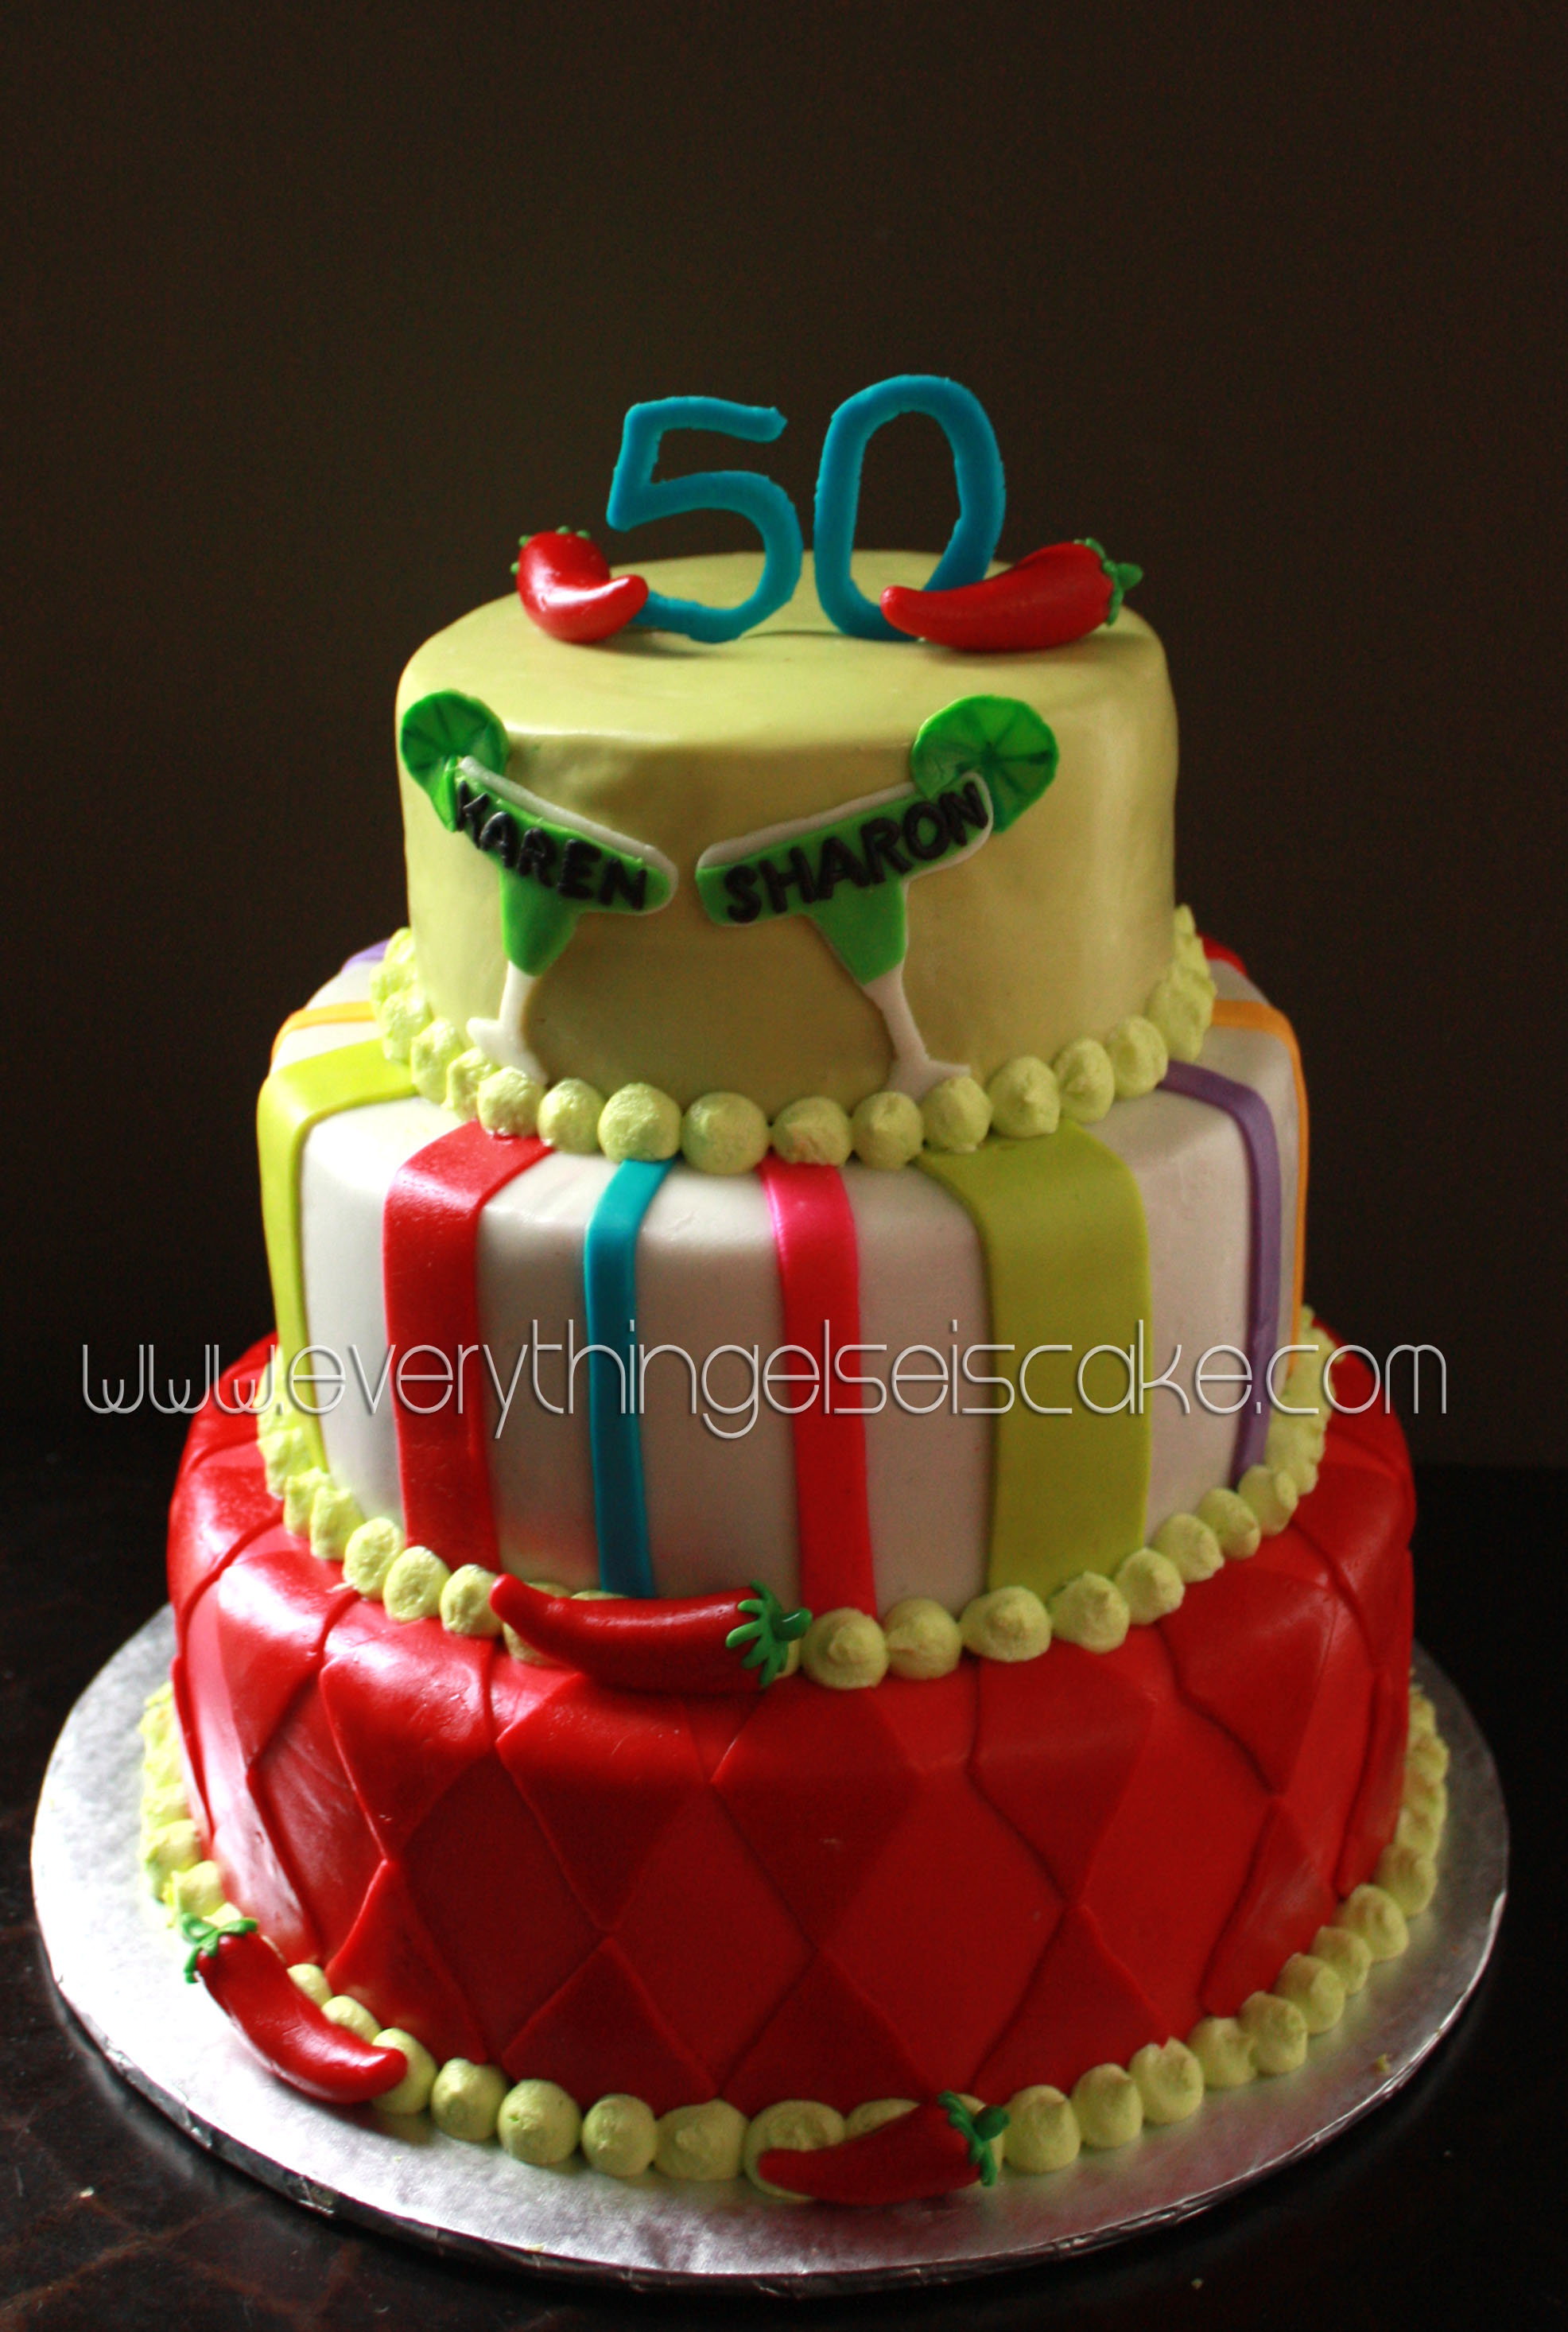 50 Everything Else Is Cake